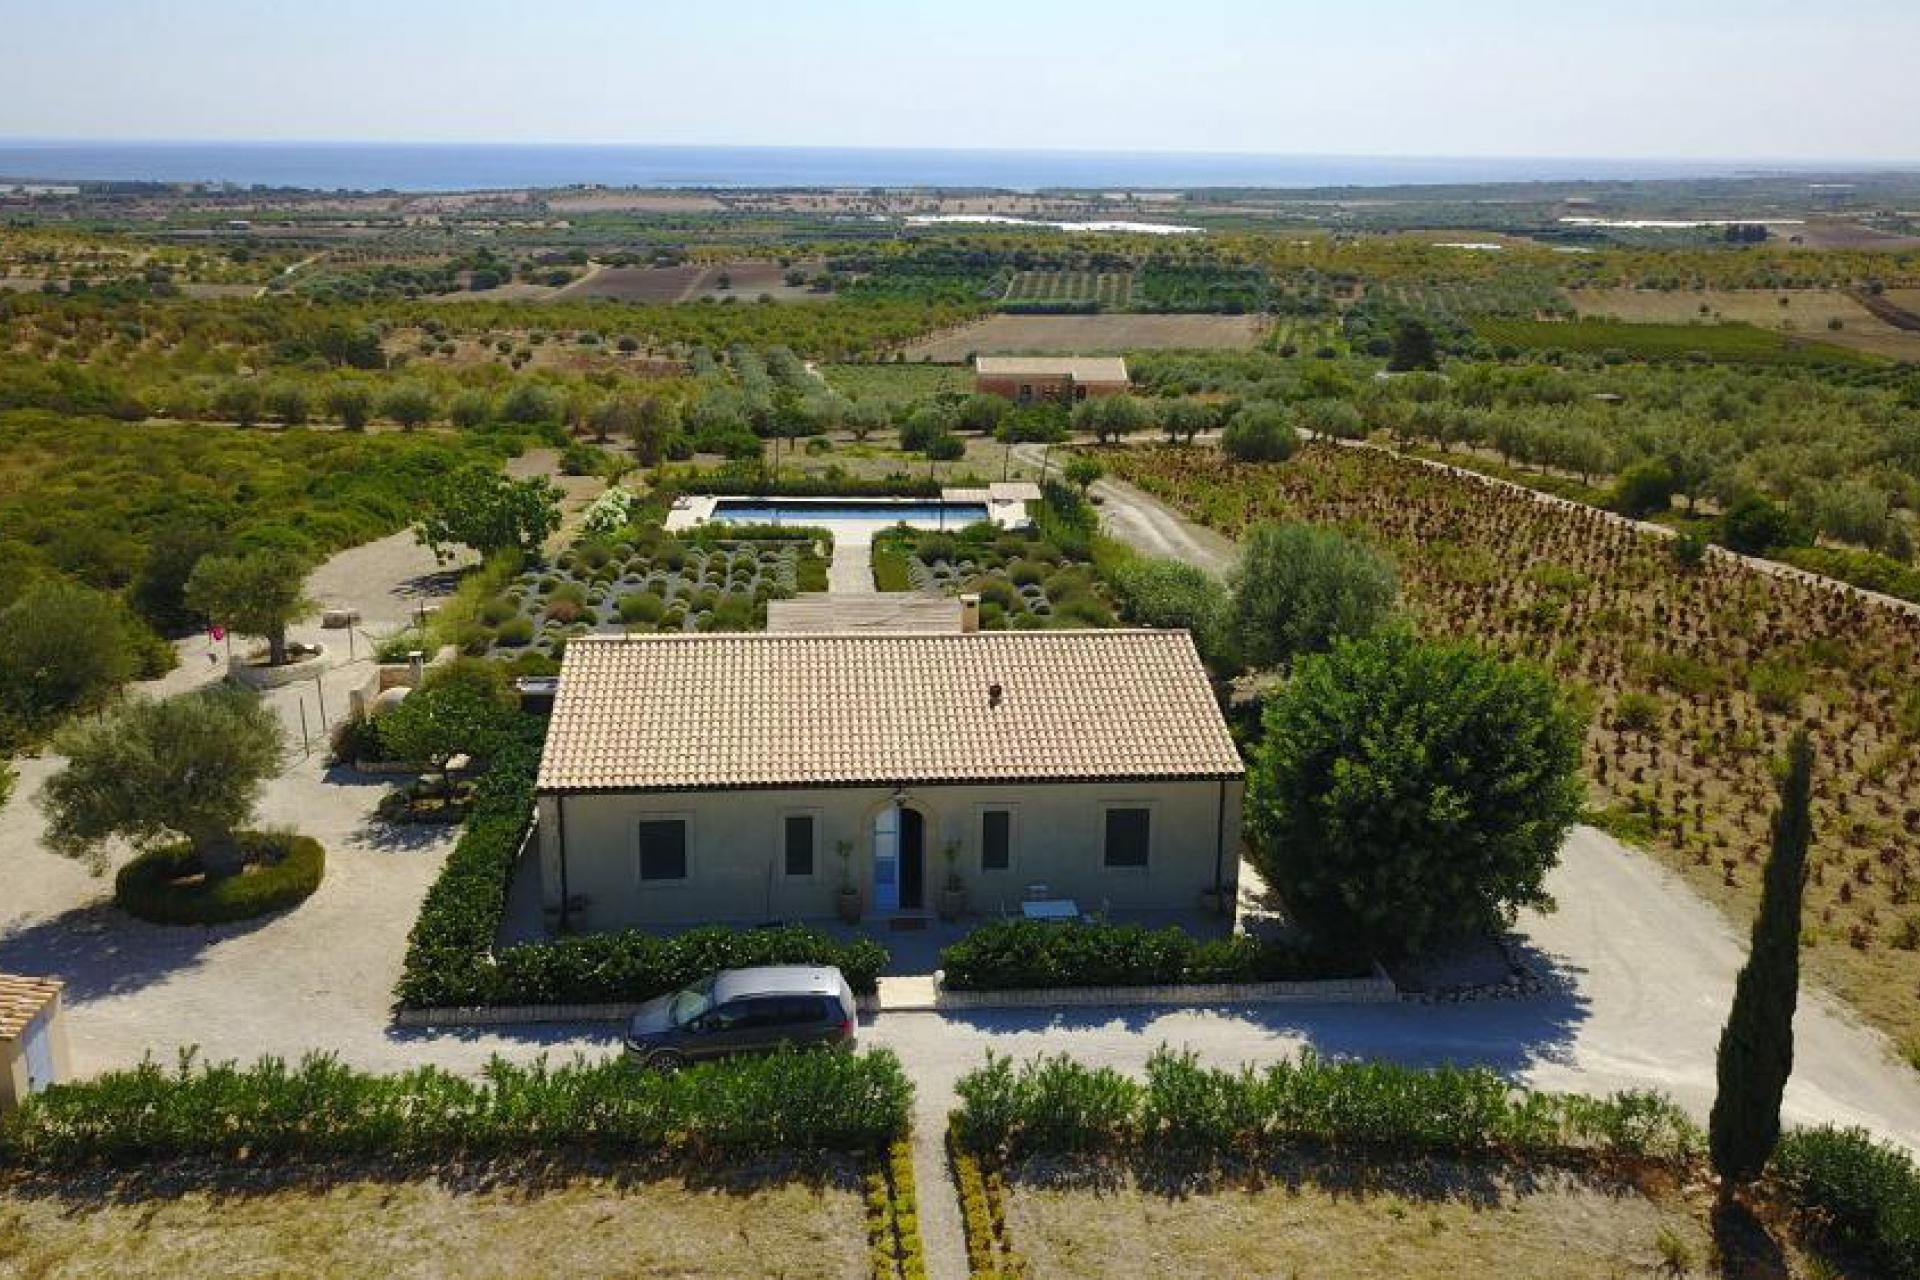 Agriturismo Sizilien Villa Sizilien mit privatem Pool und Meerblick